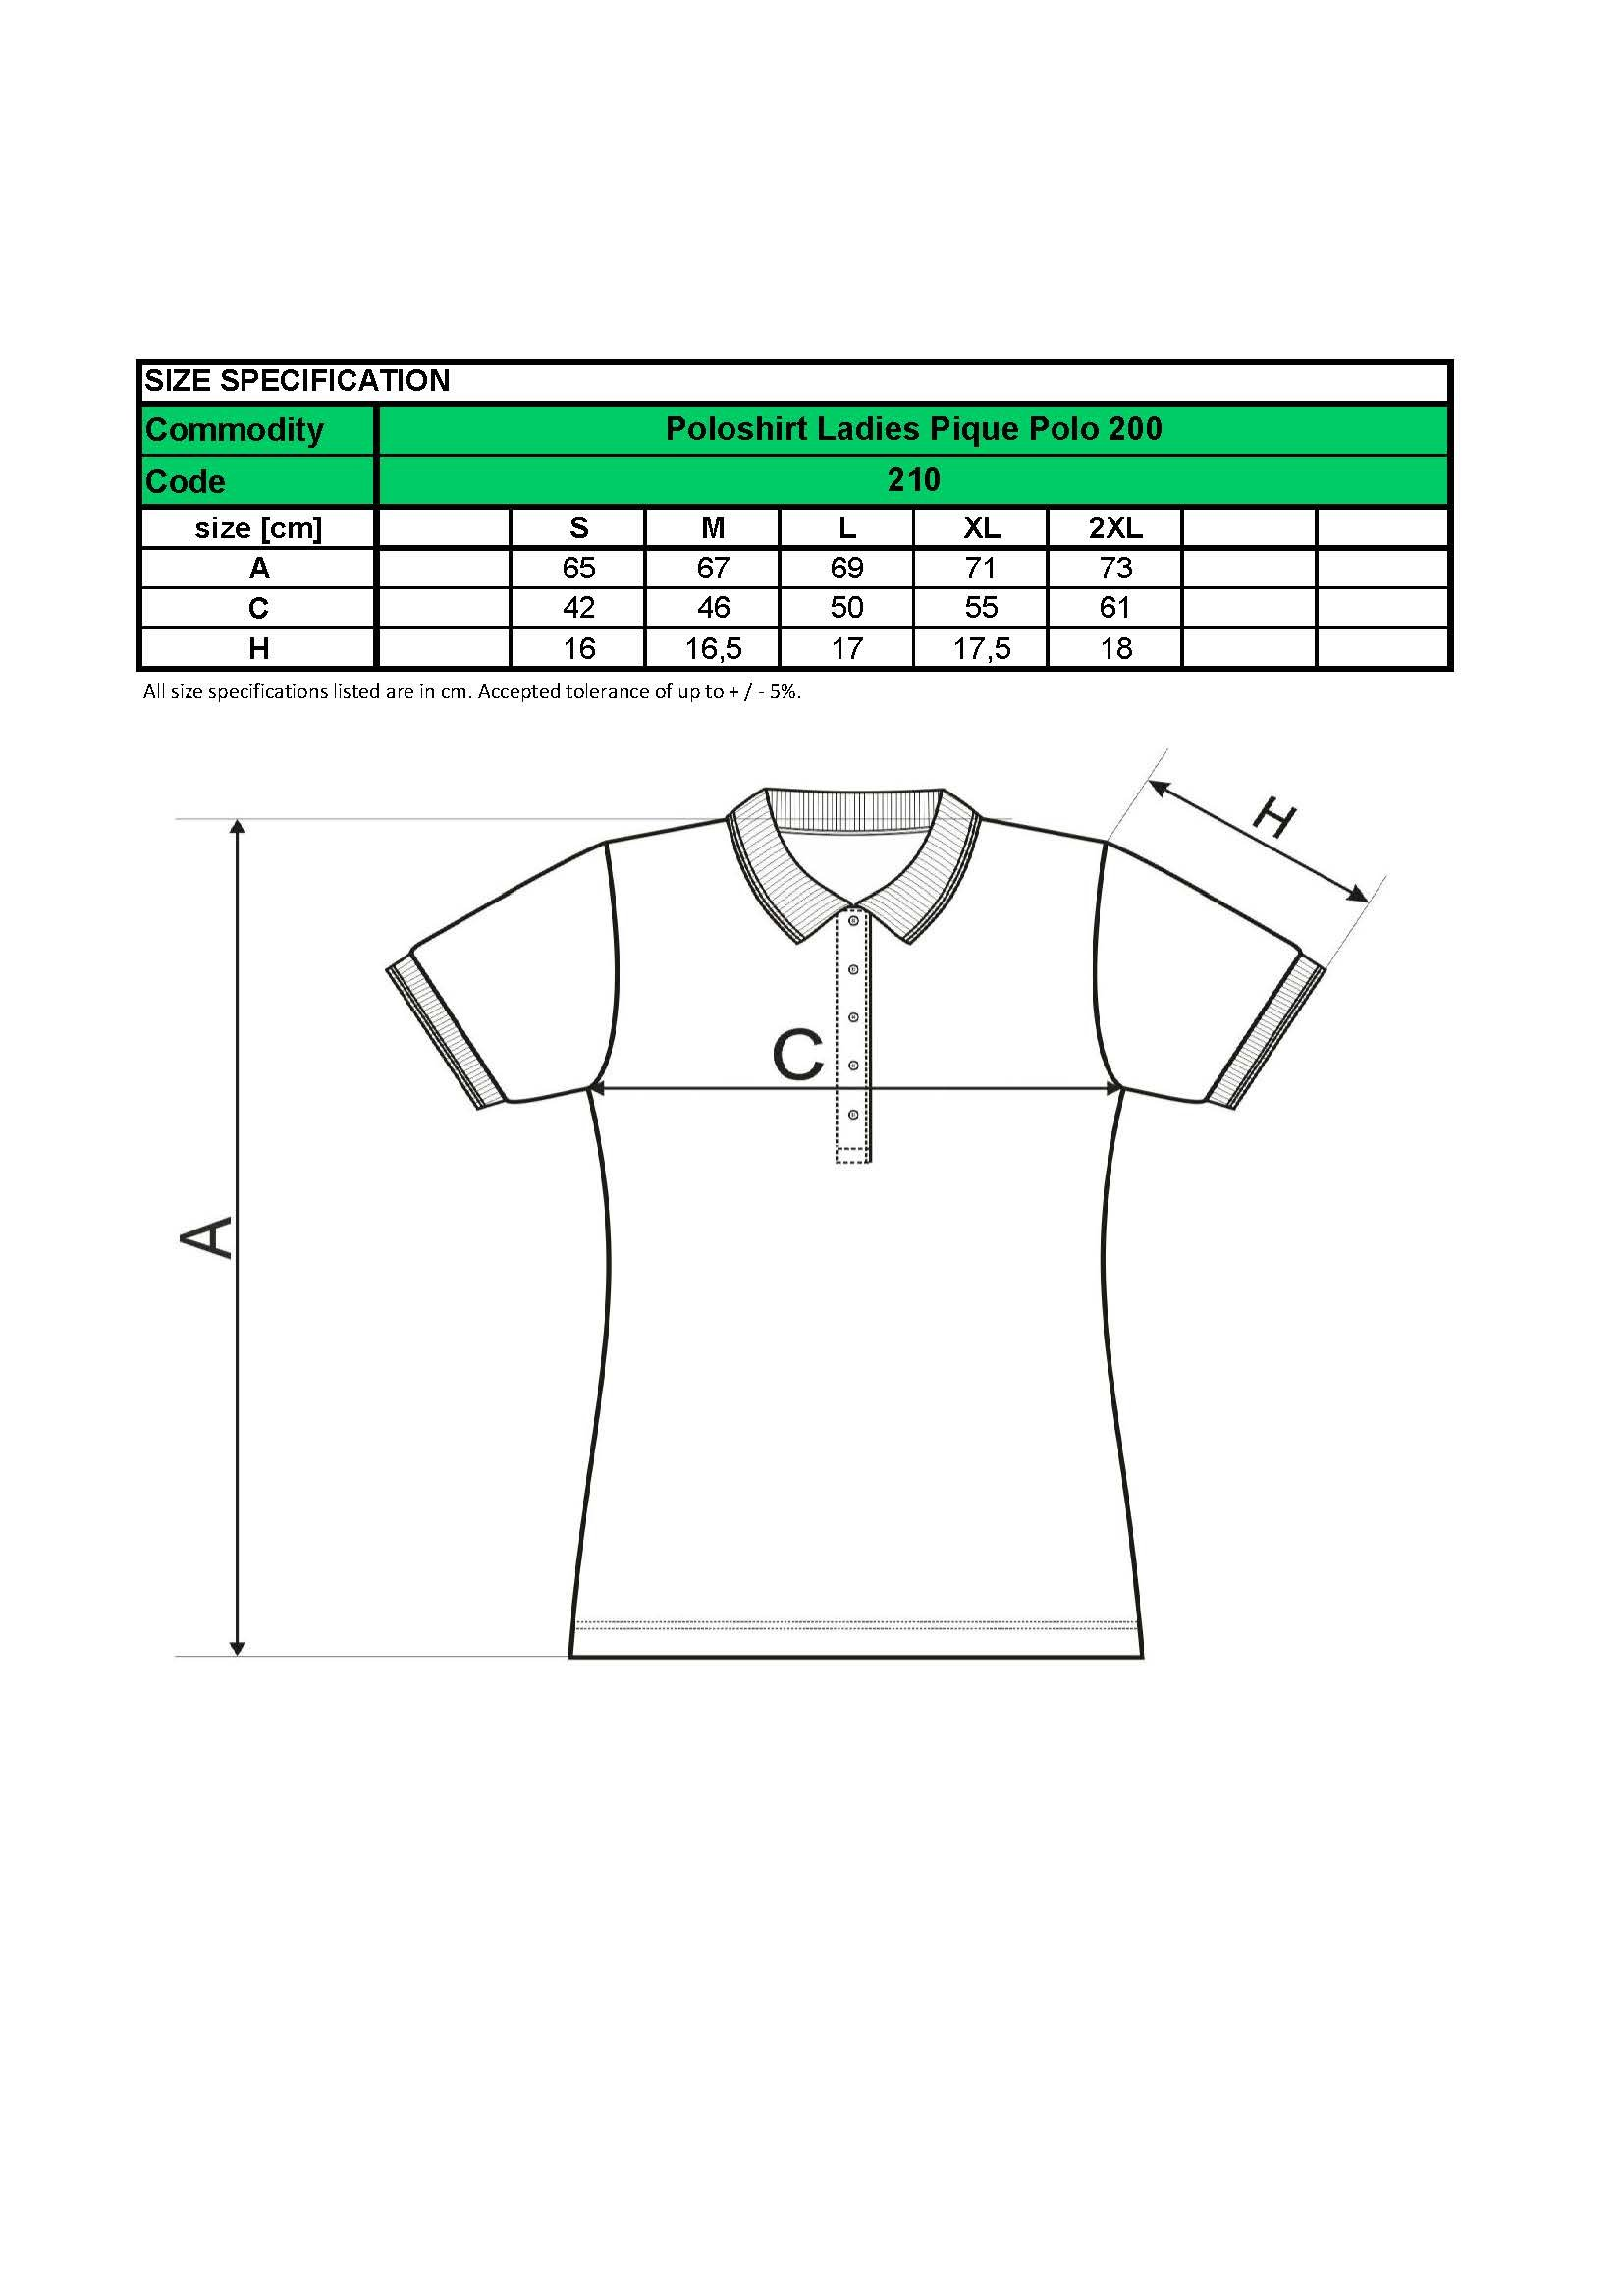 Custom Printed Promotional White Polo Shirts 210 size guide- www.ontimeprint.co.uk